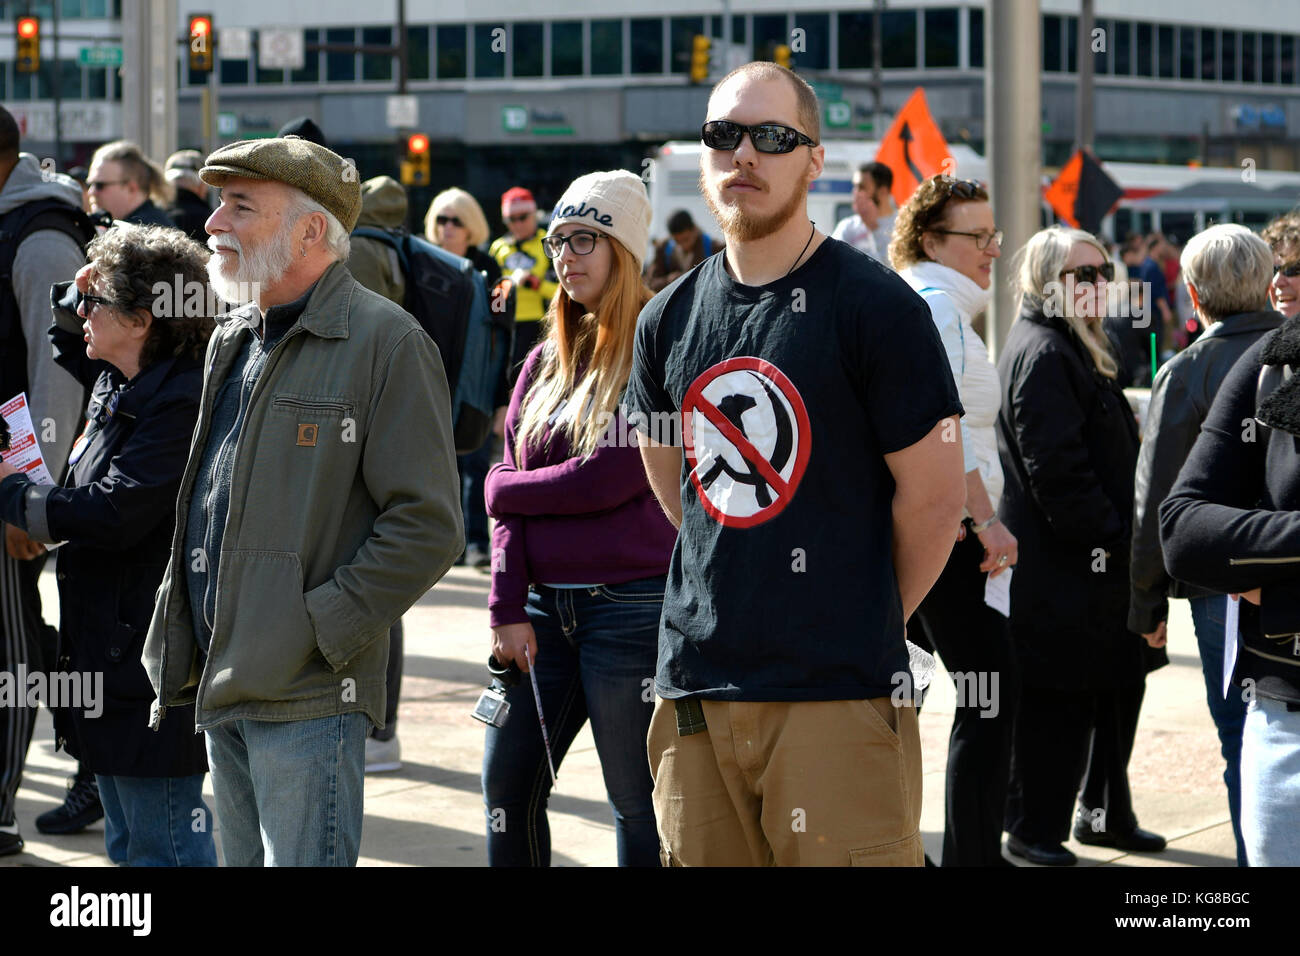 Philadelphia, United States. 04th Nov, 2017. An unidentified counter protestor stands in the crowd at a Refuse Fascism - Stock Image